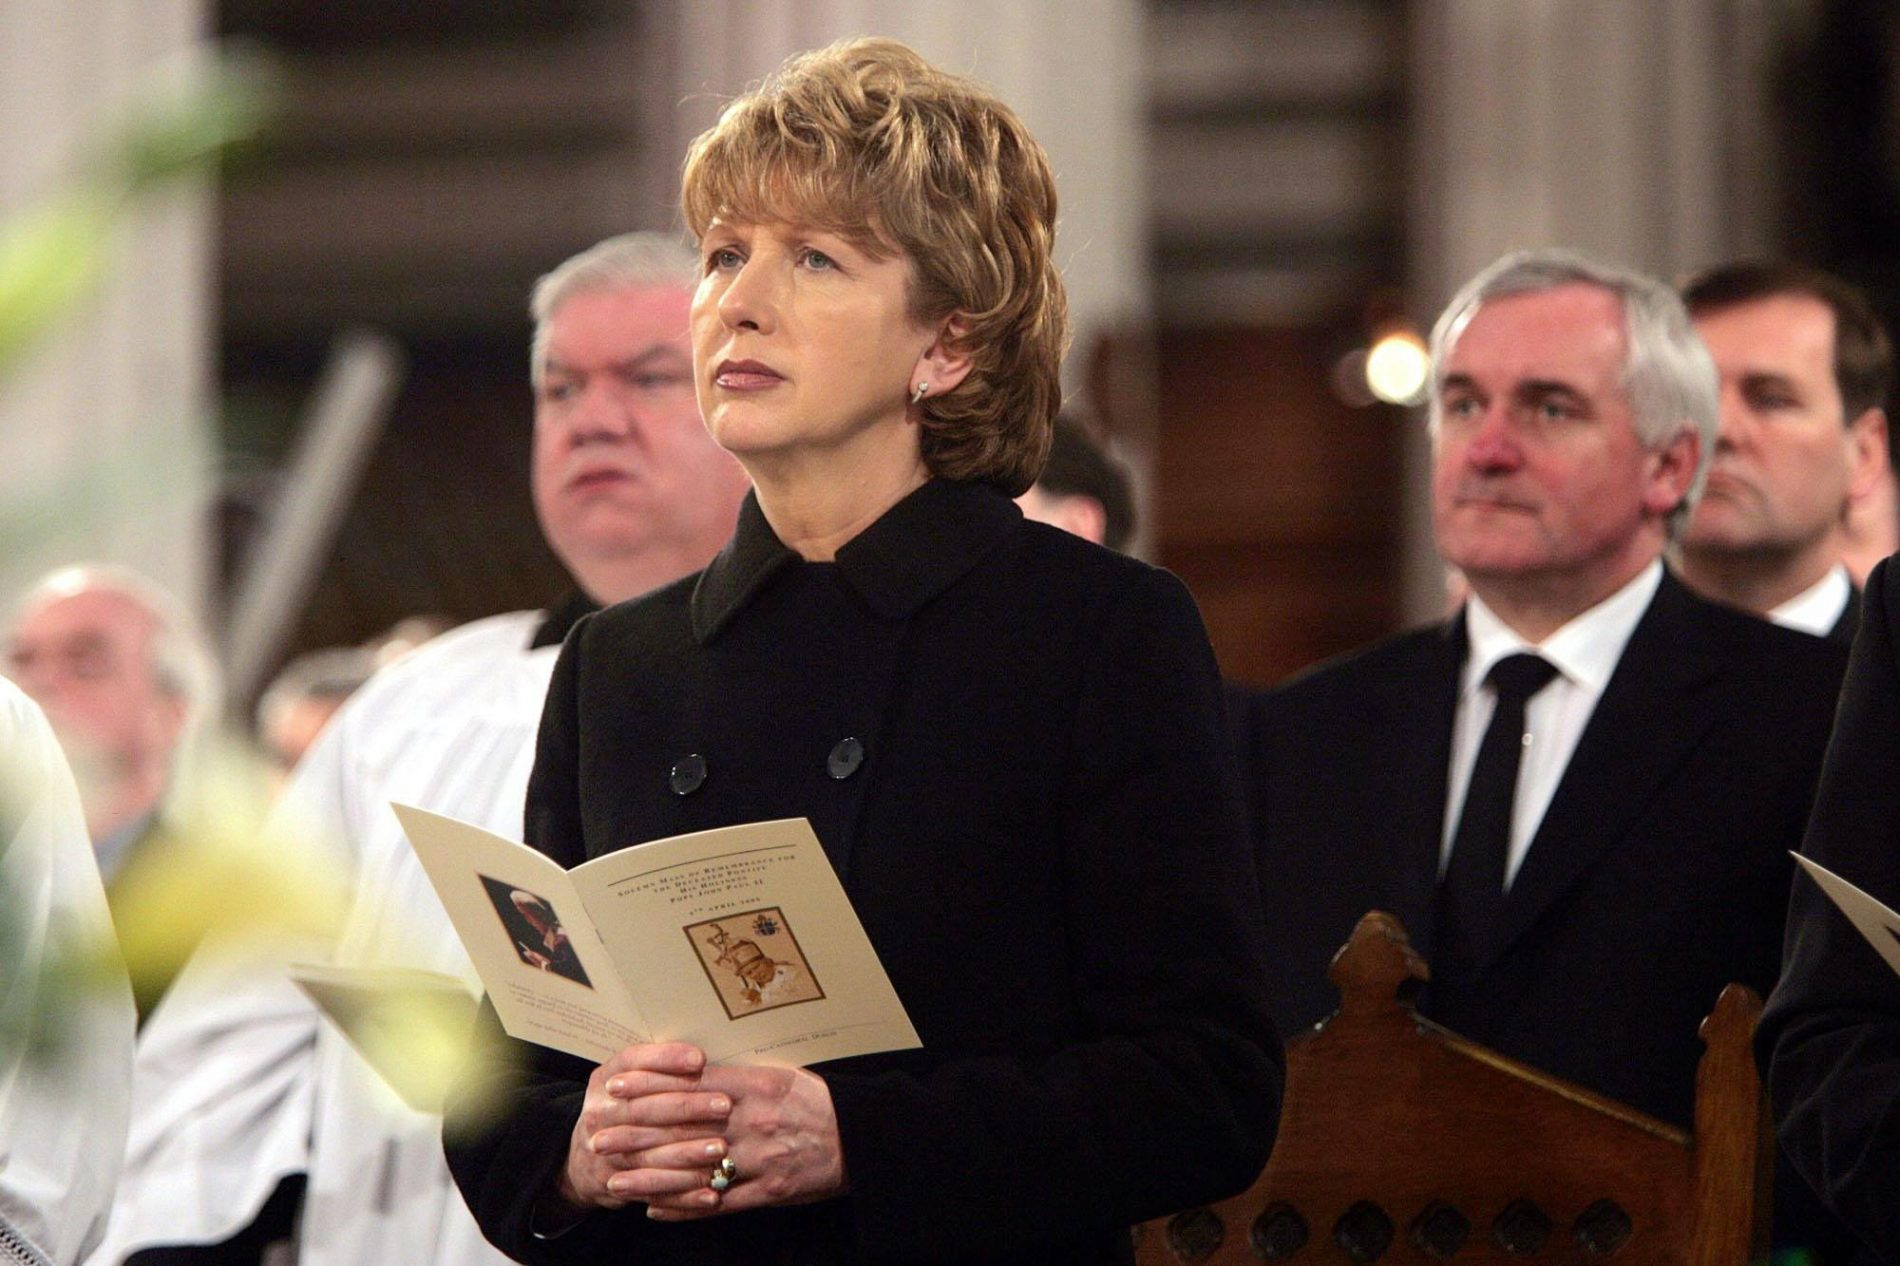 Former Ireland President Mary McAleese says Catholic Church teaching on Homosexuality is Evil